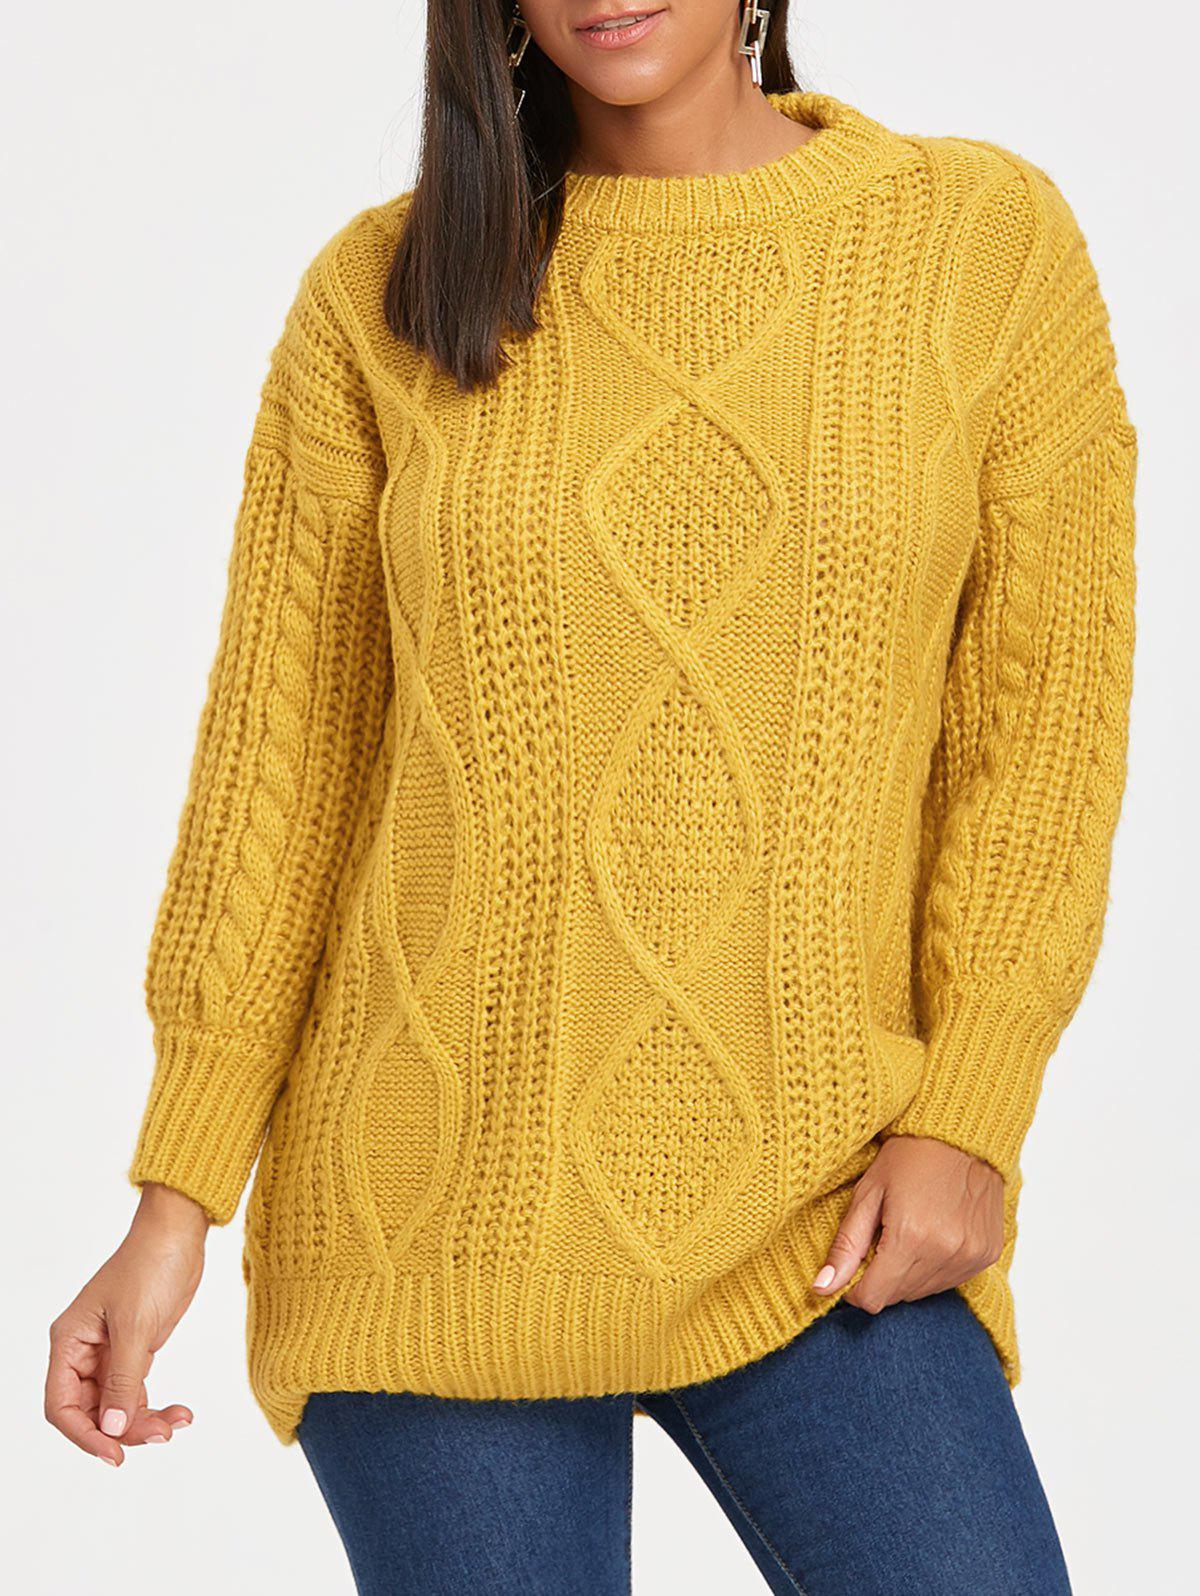 Puff Sleeve Open Front Cable Knit Sweater - GINGER ONE SIZE